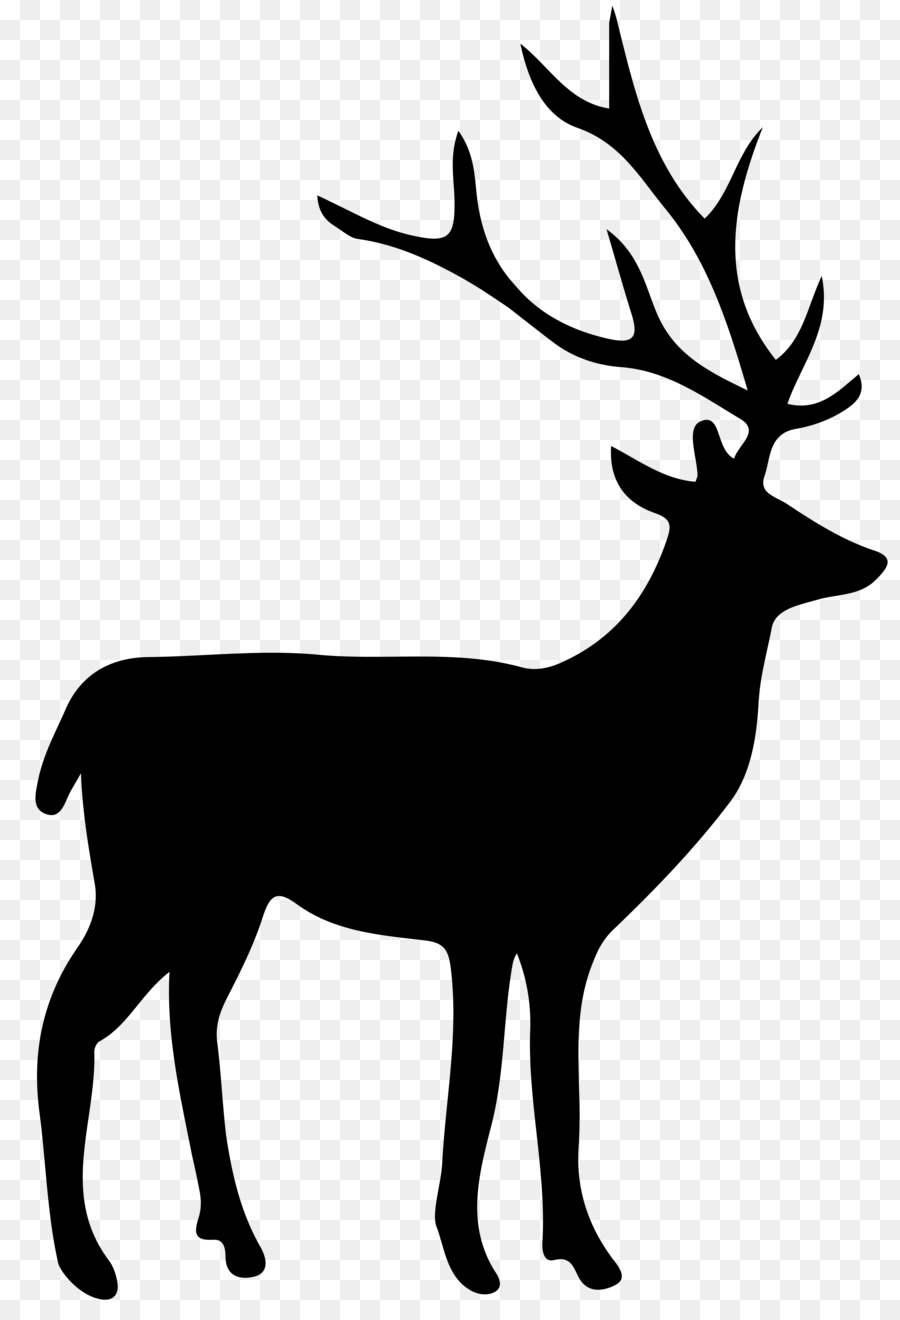 Moose Antler Silhouette : moose, antler, silhouette, Silhouette, Download, 5487*8000, Transparent, Download., CleanPNG, KissPNG